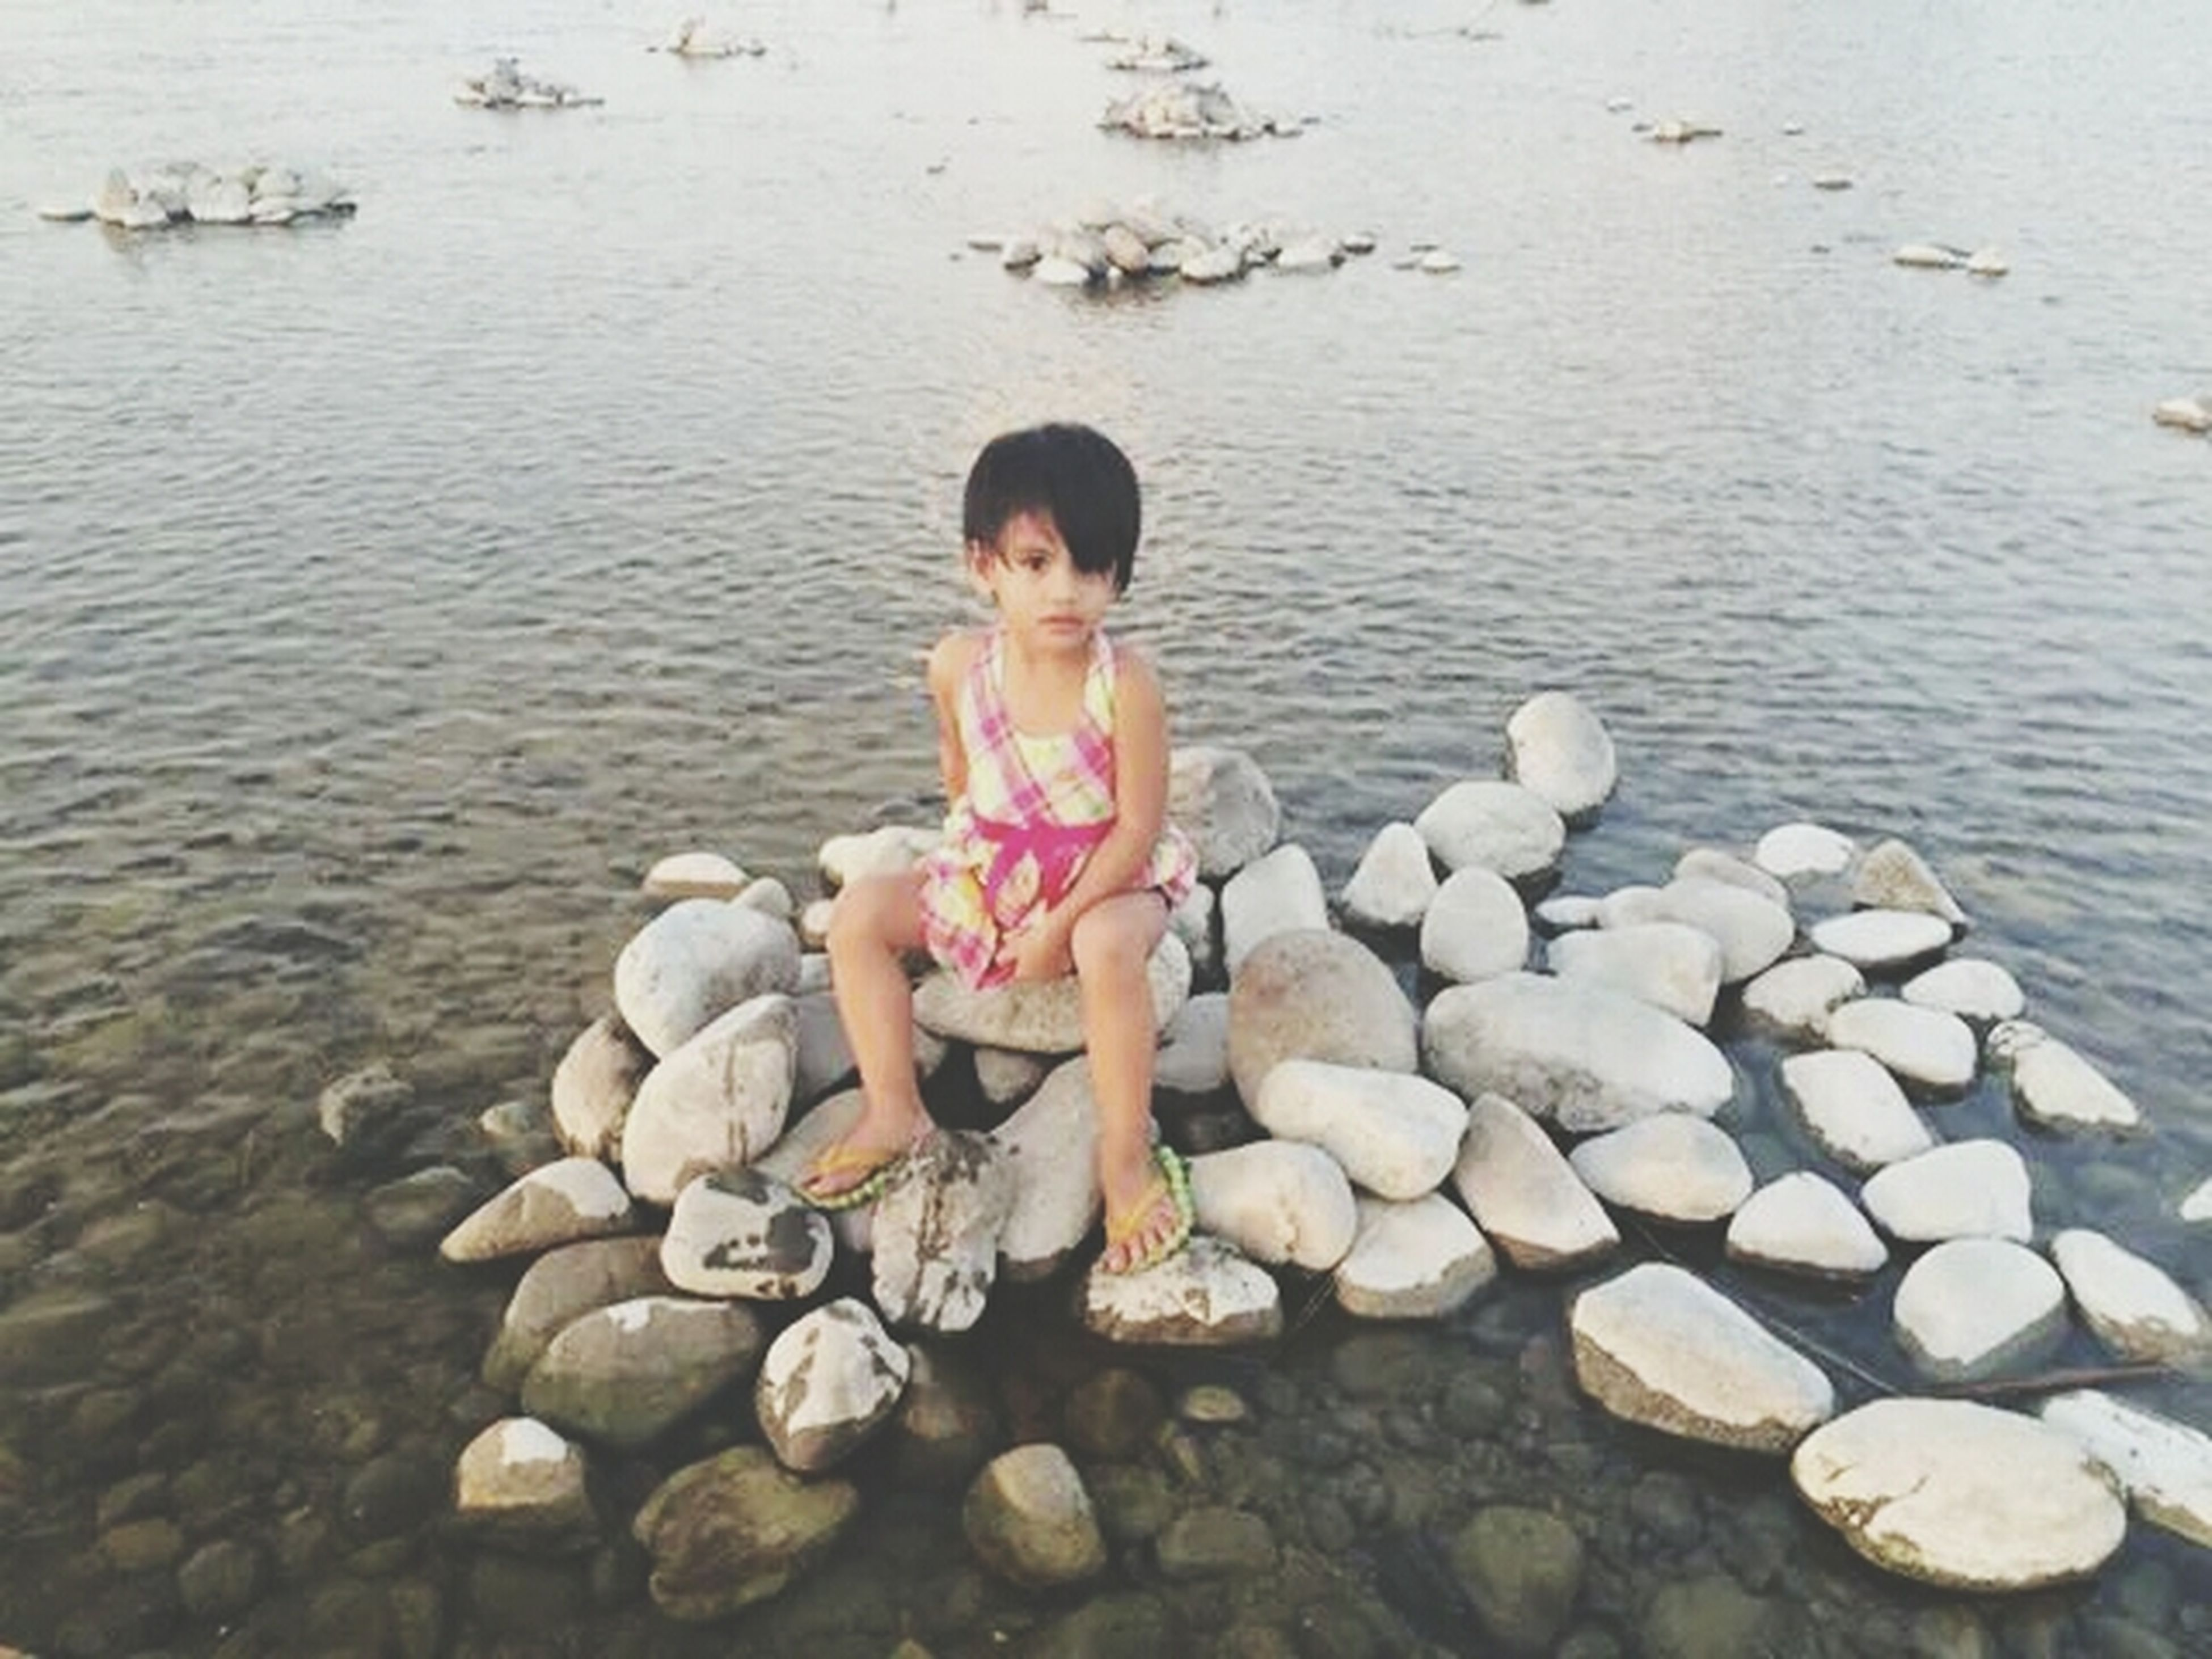 water, lifestyles, leisure activity, casual clothing, childhood, full length, person, boys, elementary age, standing, rock - object, stone - object, girls, high angle view, beach, nature, day, pebble